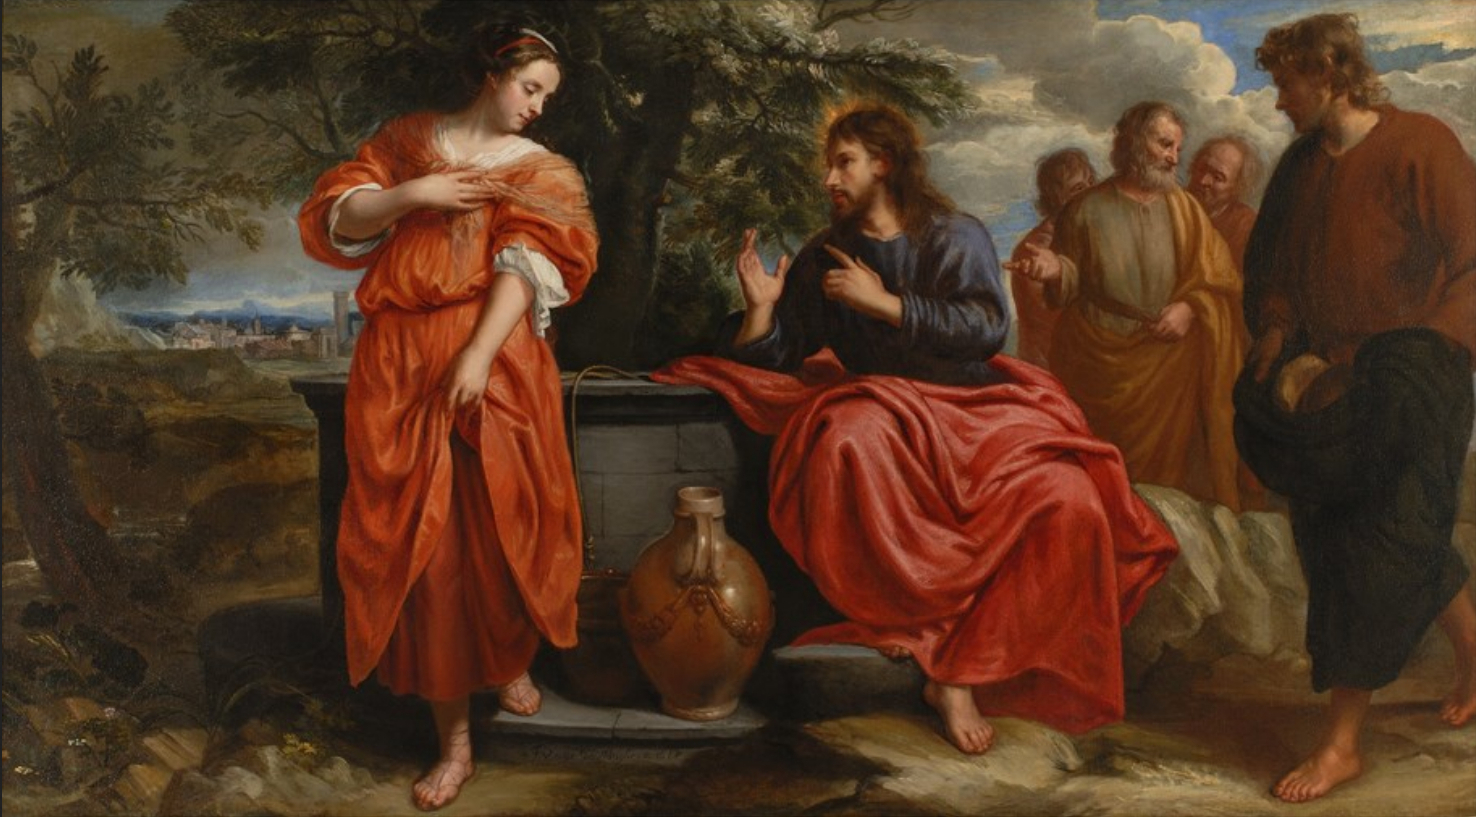 https://i0.wp.com/upload.wikimedia.org/wikipedia/commons/8/8c/Jacob_van_Oost_%28II%29_-_Christ_and_the_Samaritan_Woman_at_the_Well.jpg